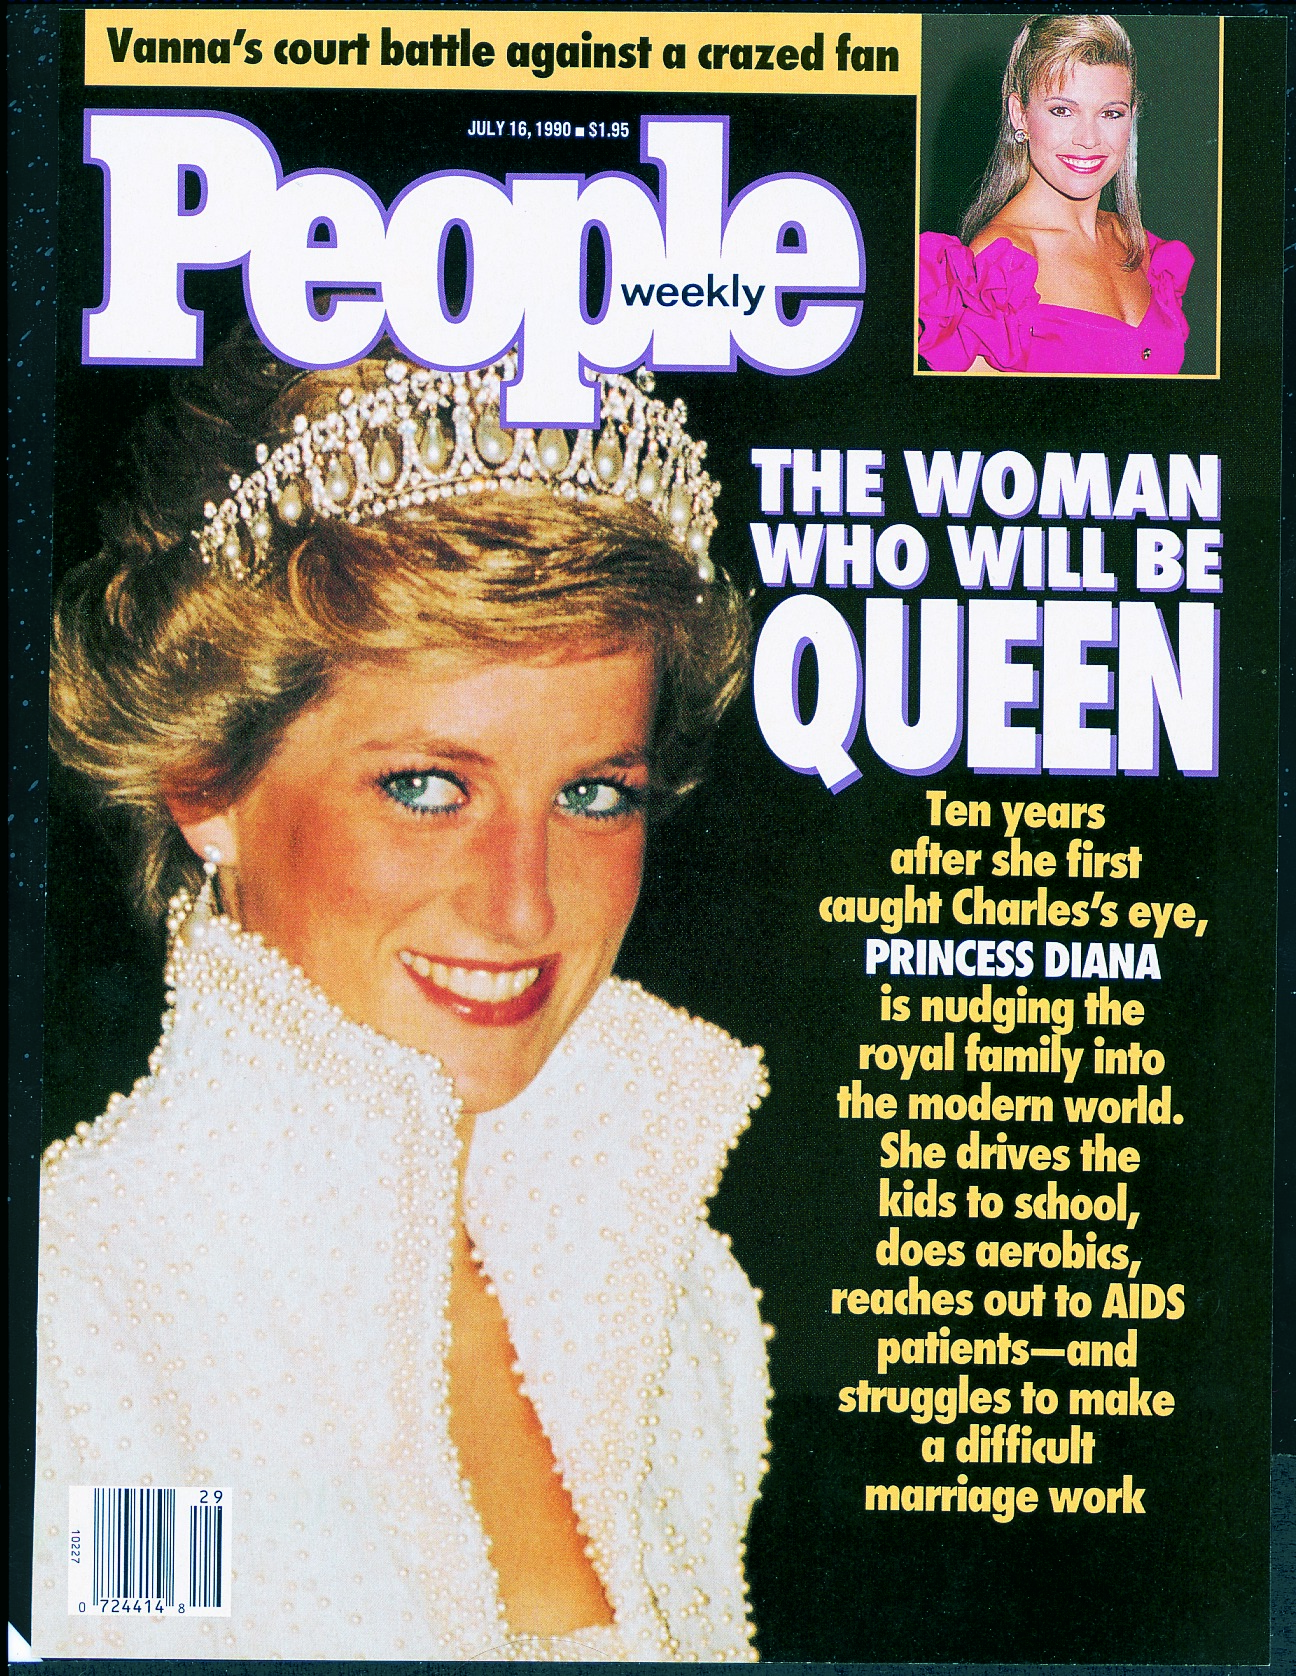 """A thoroughly modern royal at the time, Diana gained popularity in part for her devotion to keeping things real. """"She drives the kids to school, does aerobics, reaches out to AIDS patients — and struggles to make a difficult marriage work,"""" read PEOPLE's cover."""